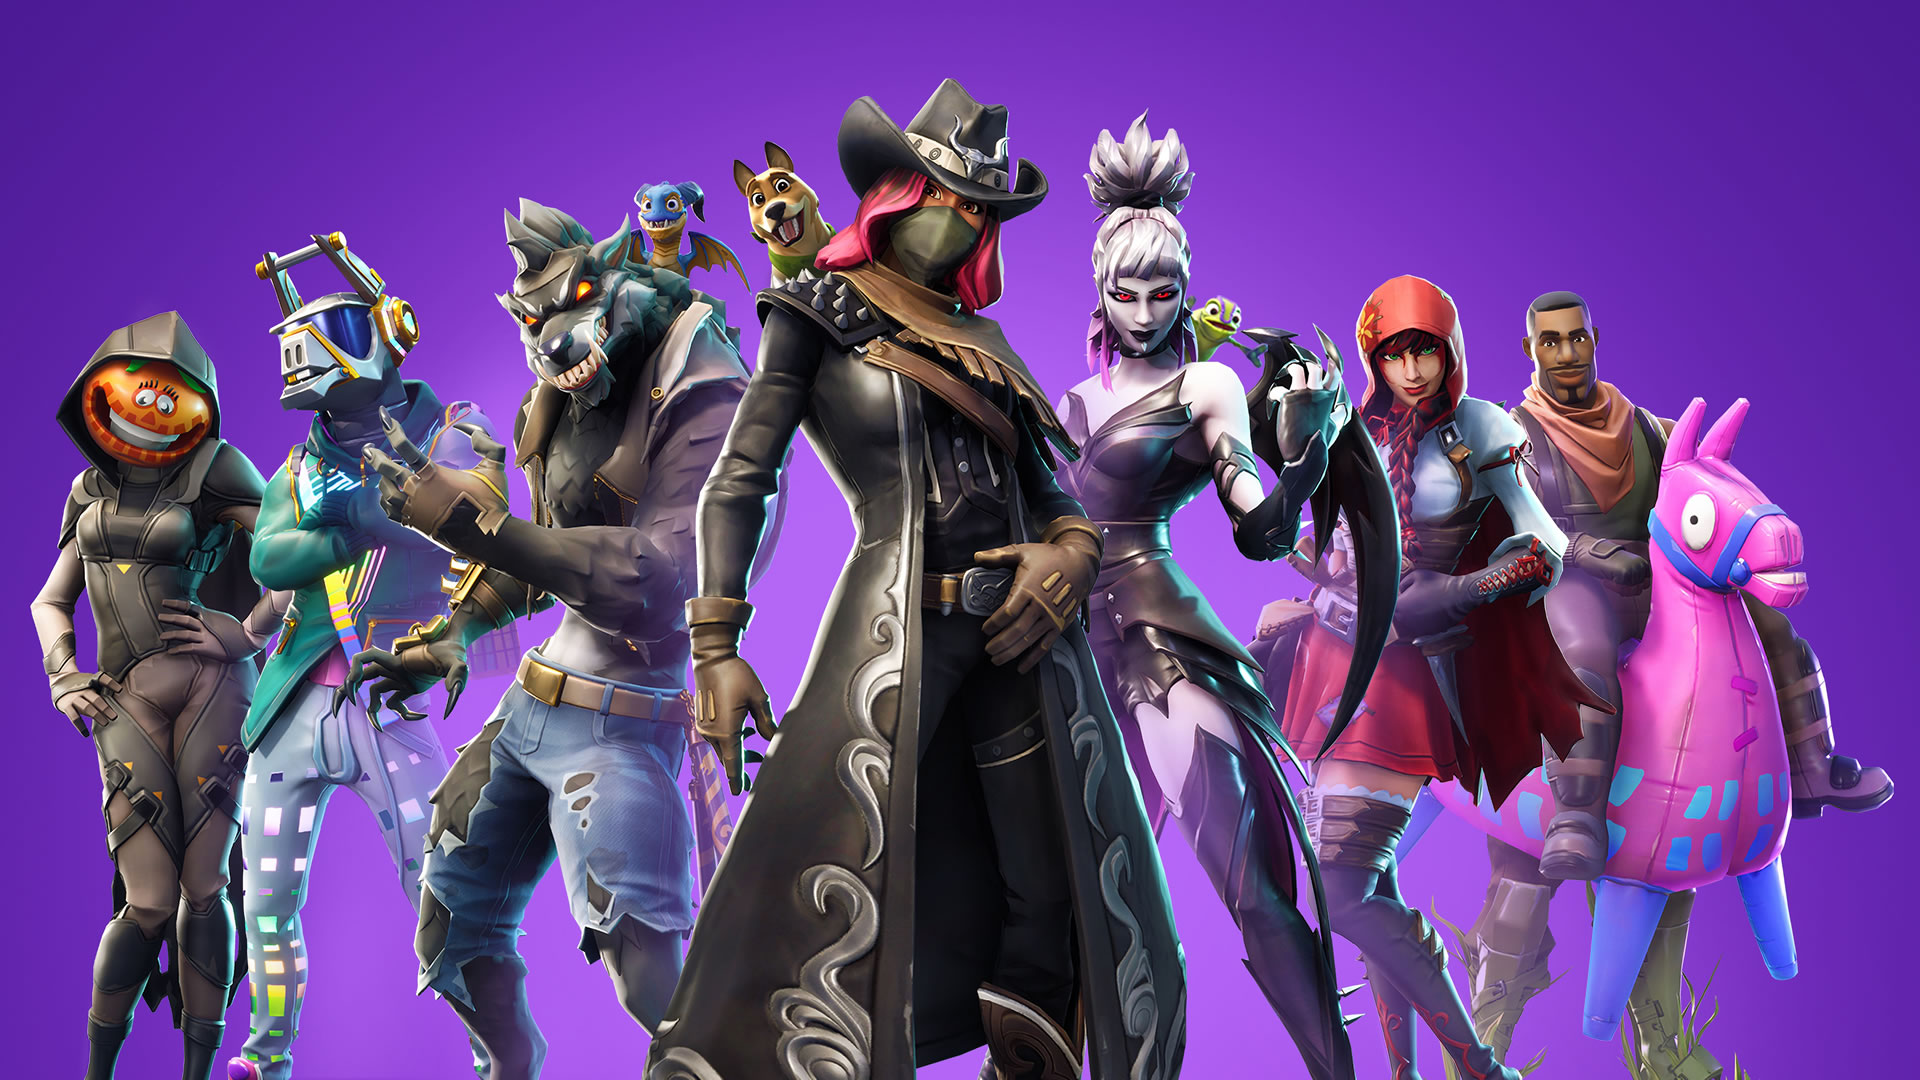 download wallpaper: Fortnite – seizoen 6 wallpaper